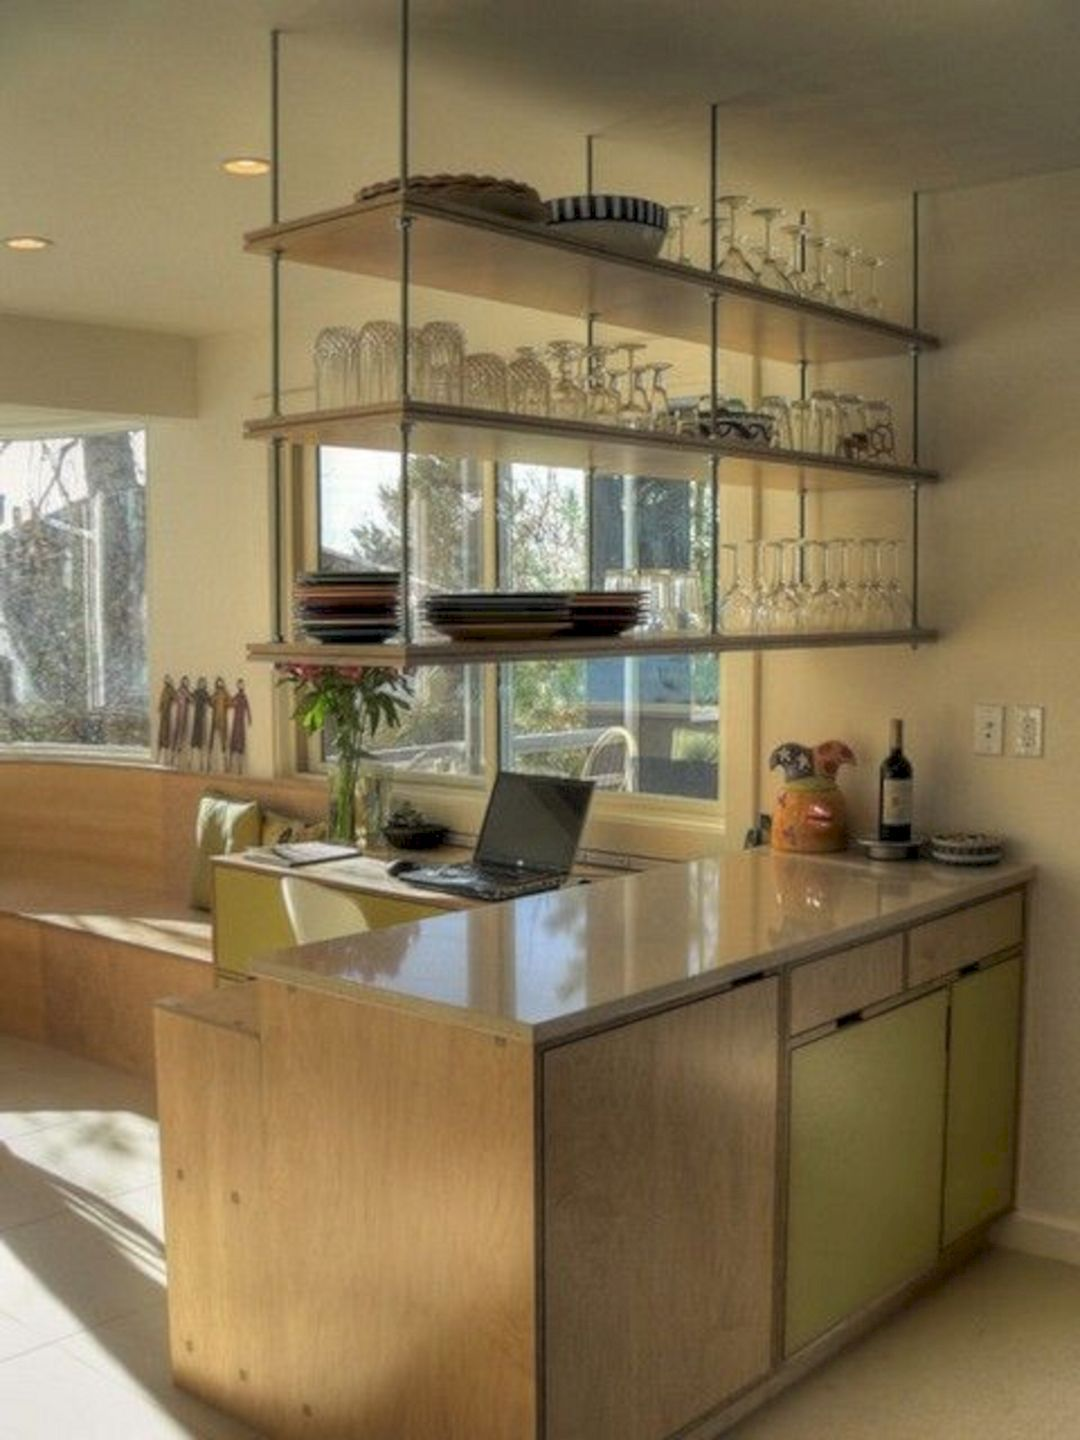 35 Marvelous Kitchen Cabinets Hanging From Ceiling For Your Beautiful Kitchen Hanging Kitchen Cabinets Hanging Shelf Kitchen Beautiful Kitchens